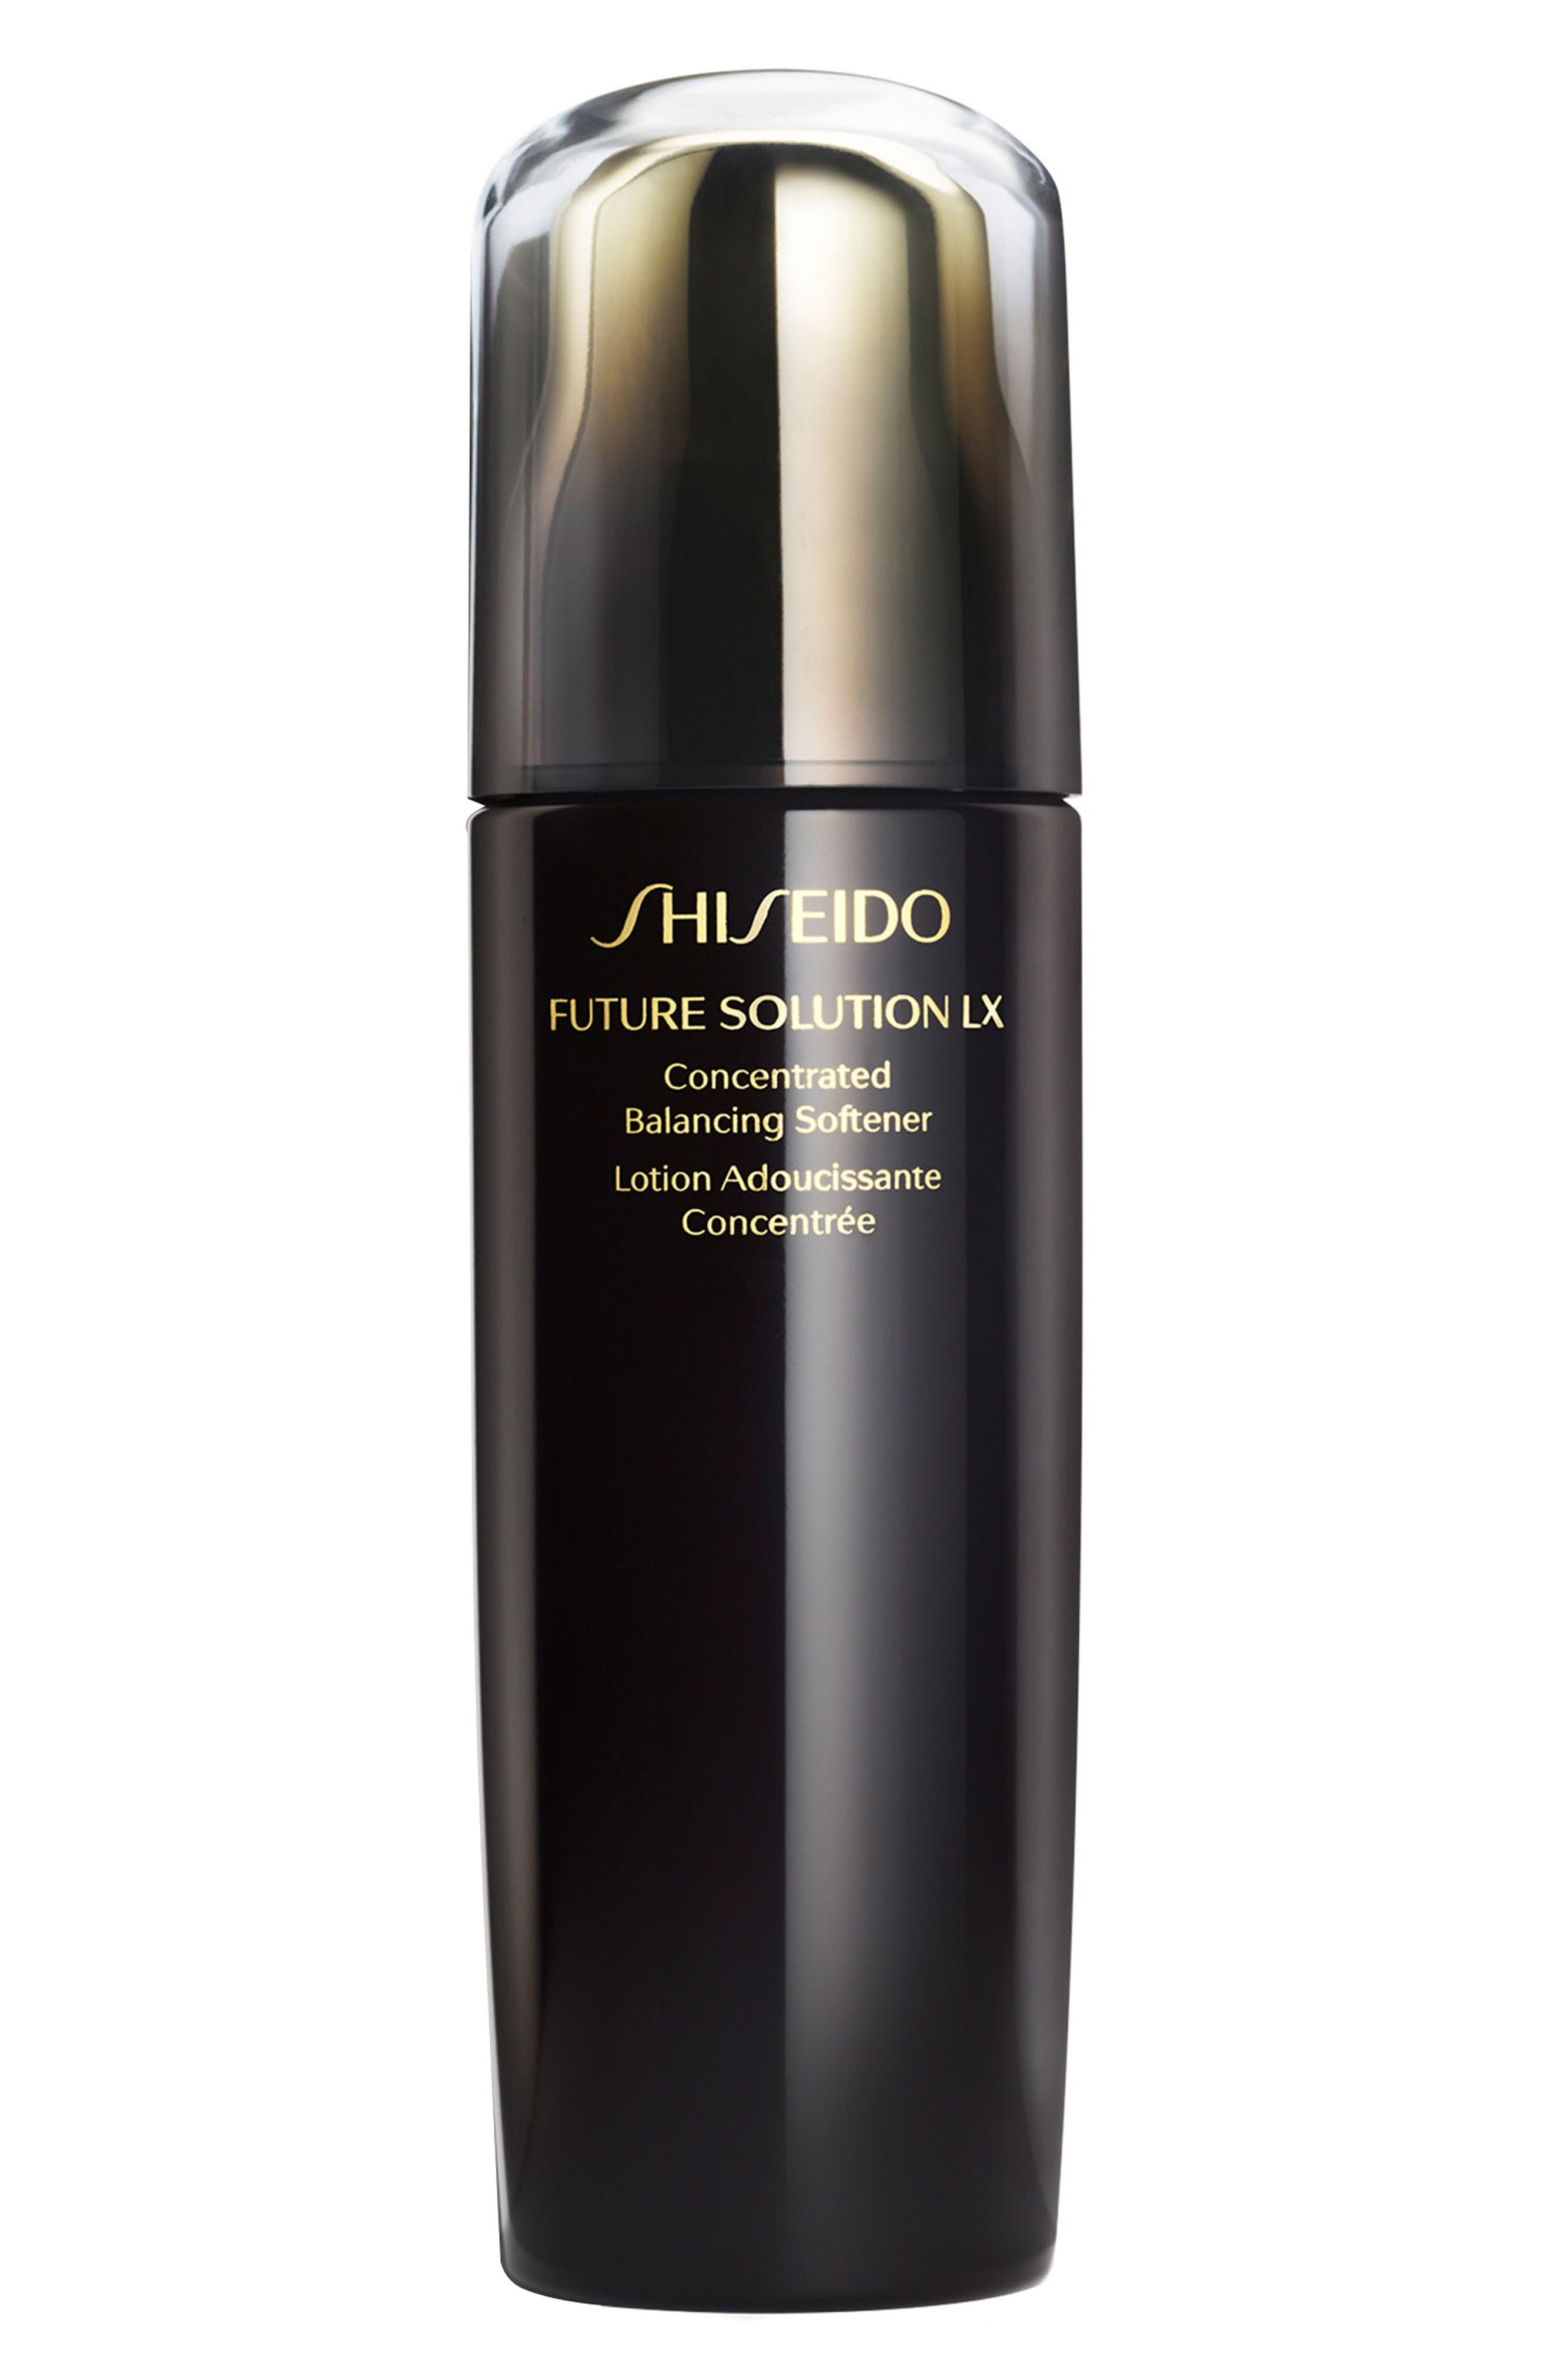 Alternate Image 1 Selected - Shiseido Future Solution LX Concentrated Balancing Softener